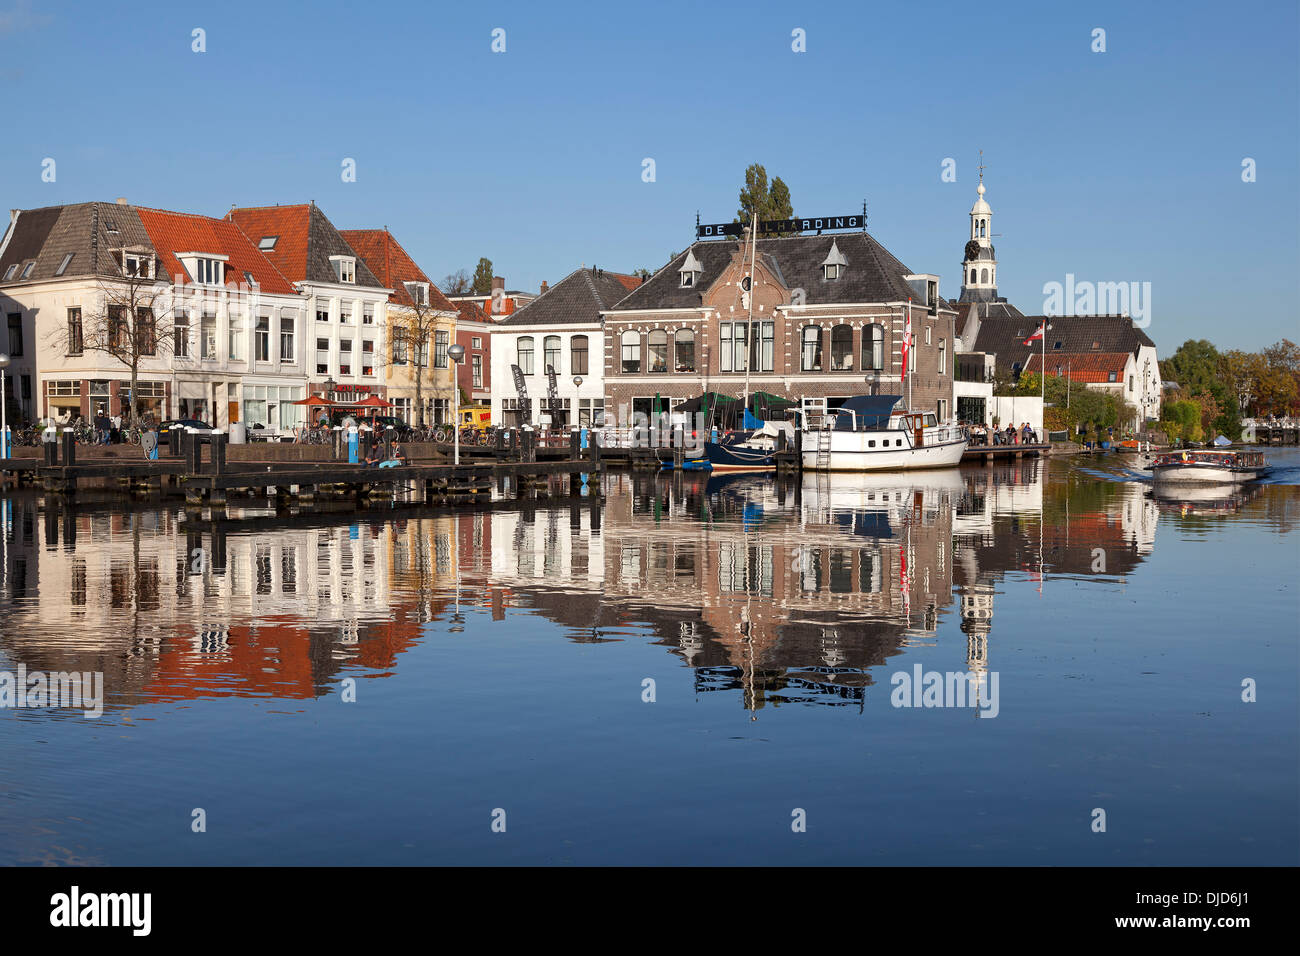 Touristenhafen in Leiden, Holland Stockbild